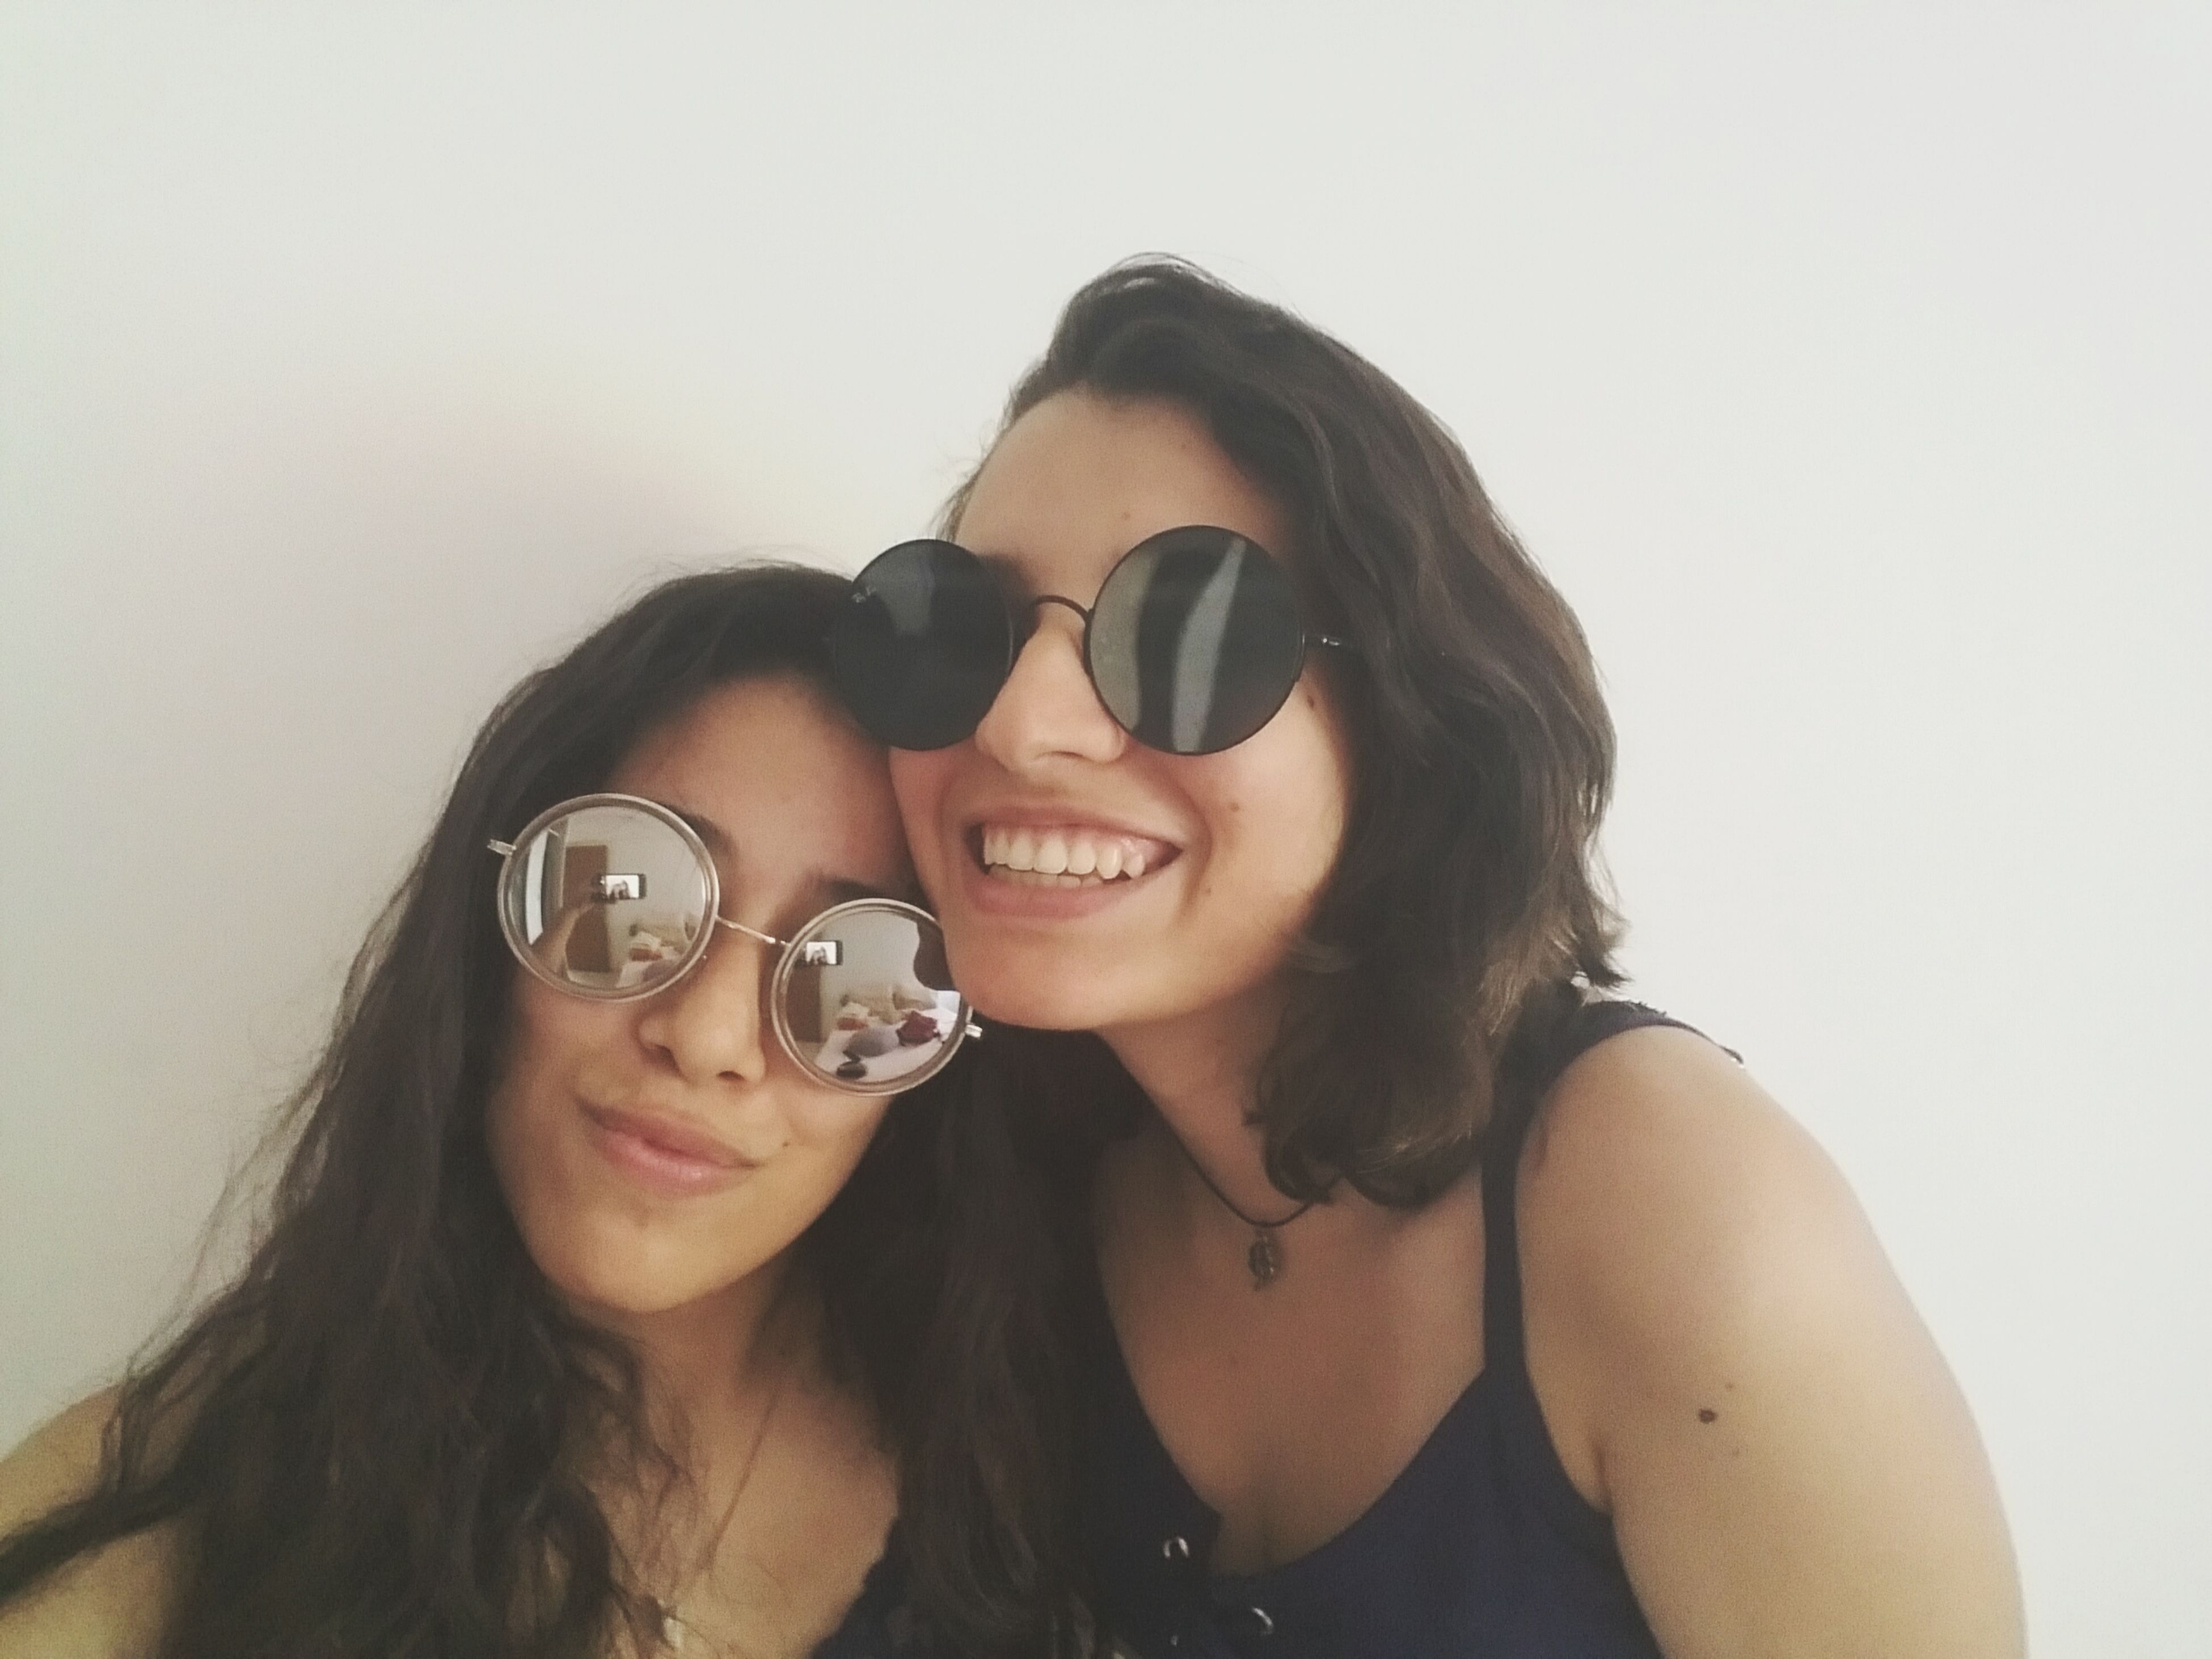 two people, smiling, real people, photography themes, lifestyles, portrait, happiness, sunglasses, technology, cheerful, looking at camera, young women, young adult, togetherness, leisure activity, women, selfie, bonding, indoors, people, adult, day